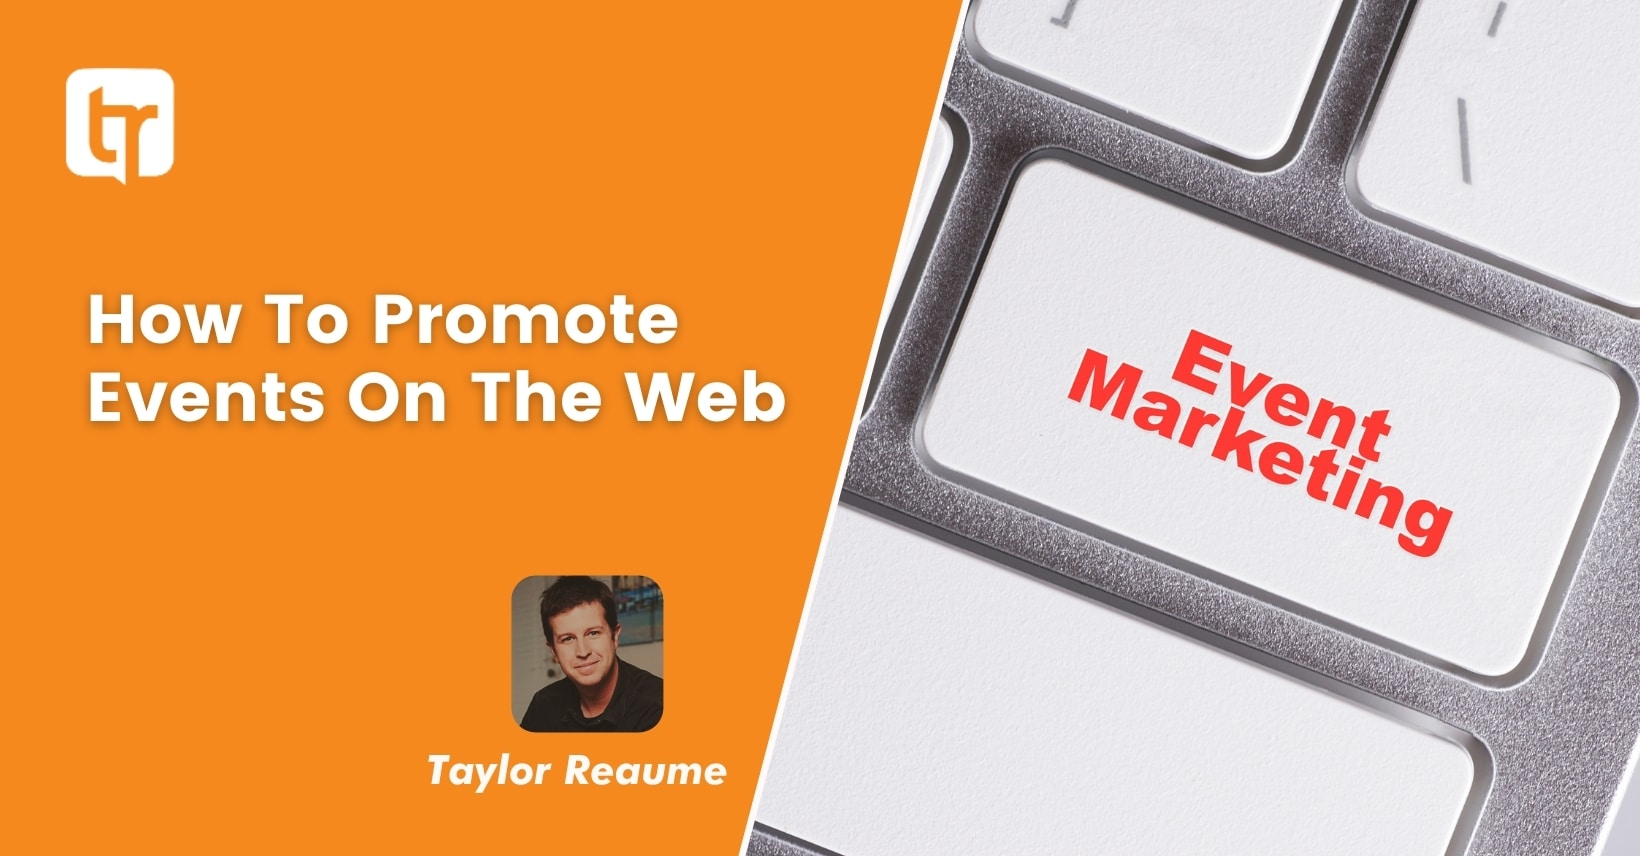 Event Marketing and Event Promotion Ideas